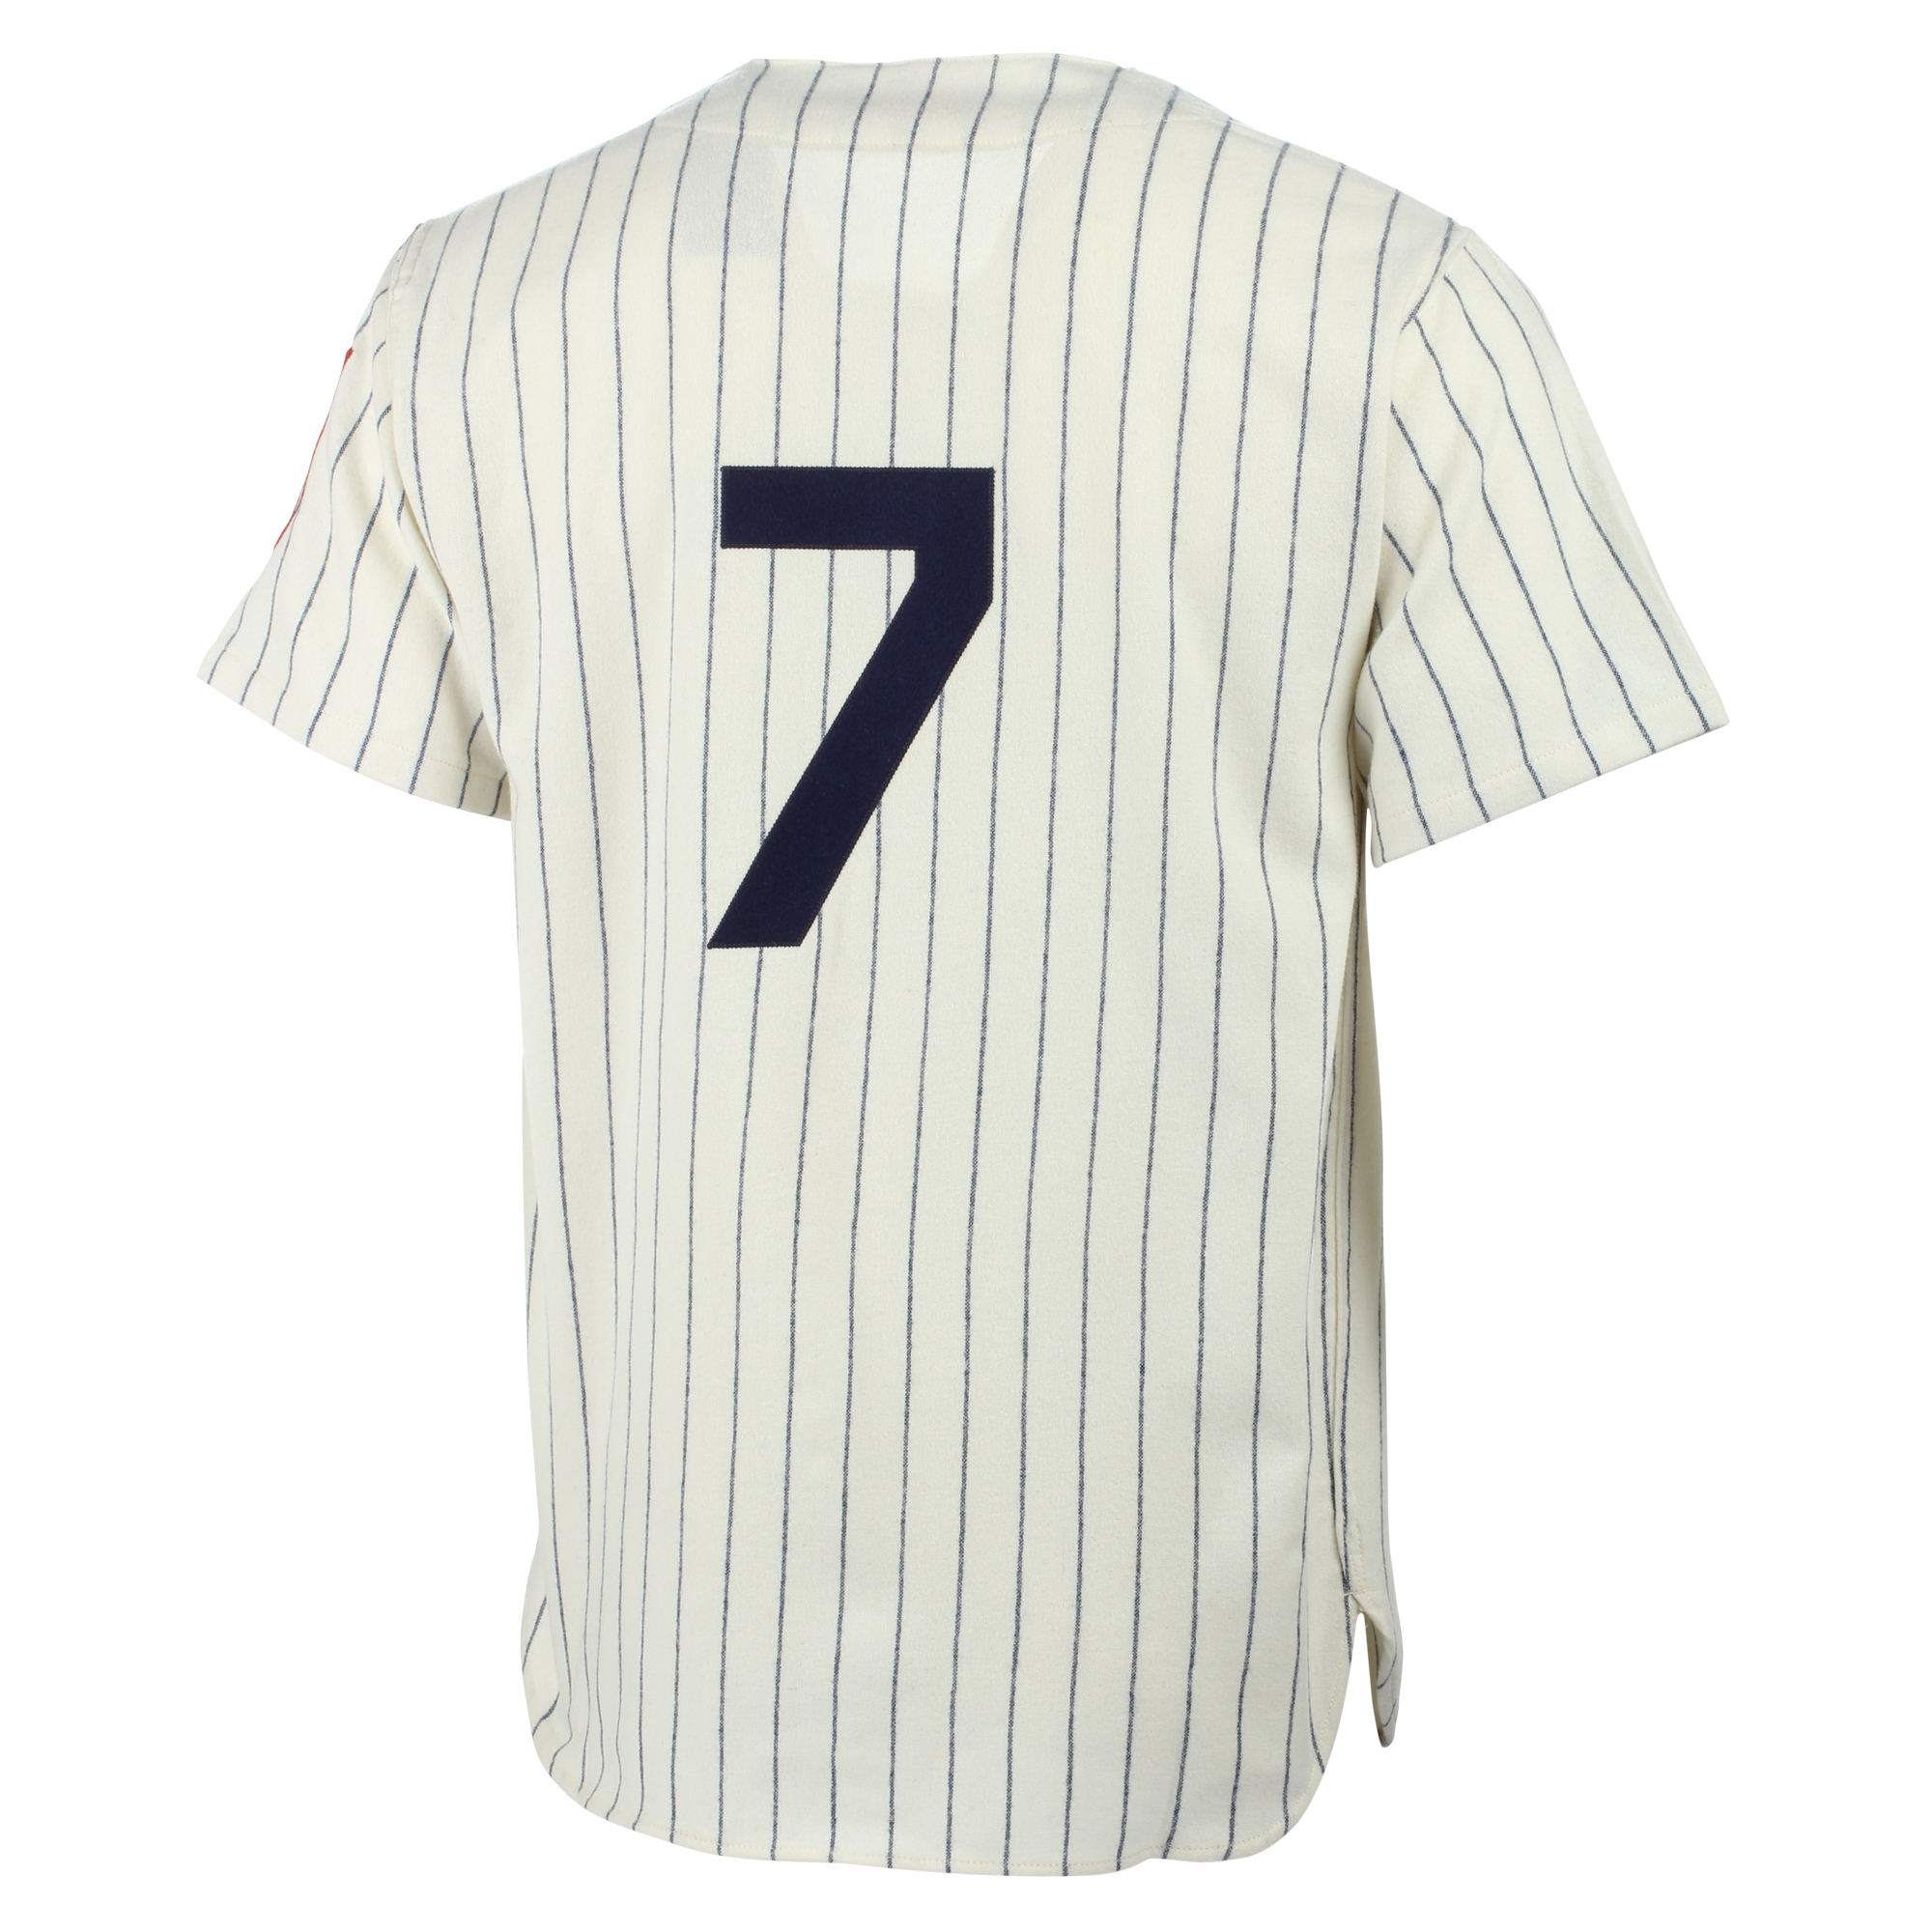 18433a87fb6 Mickey Mantle New York Yankees Mitchell   Ness MLB Authentic Jersey - Cream  - Walmart.com